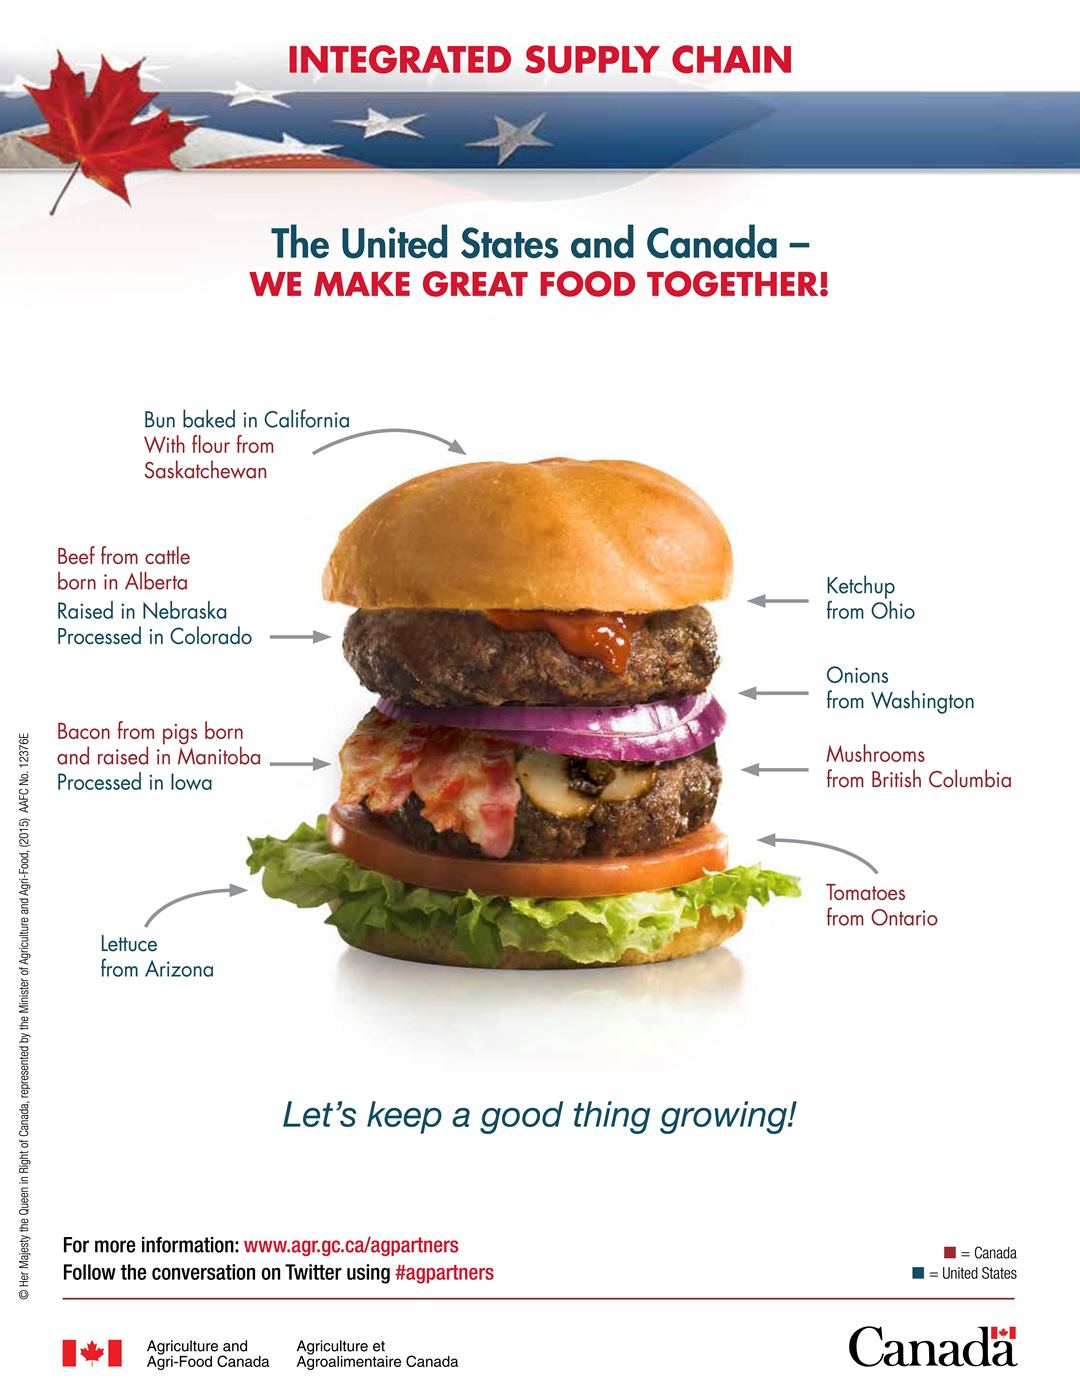 Agriculture and Agri-Food Canada Integrated Canada-US Supply Chain Promotional Poster